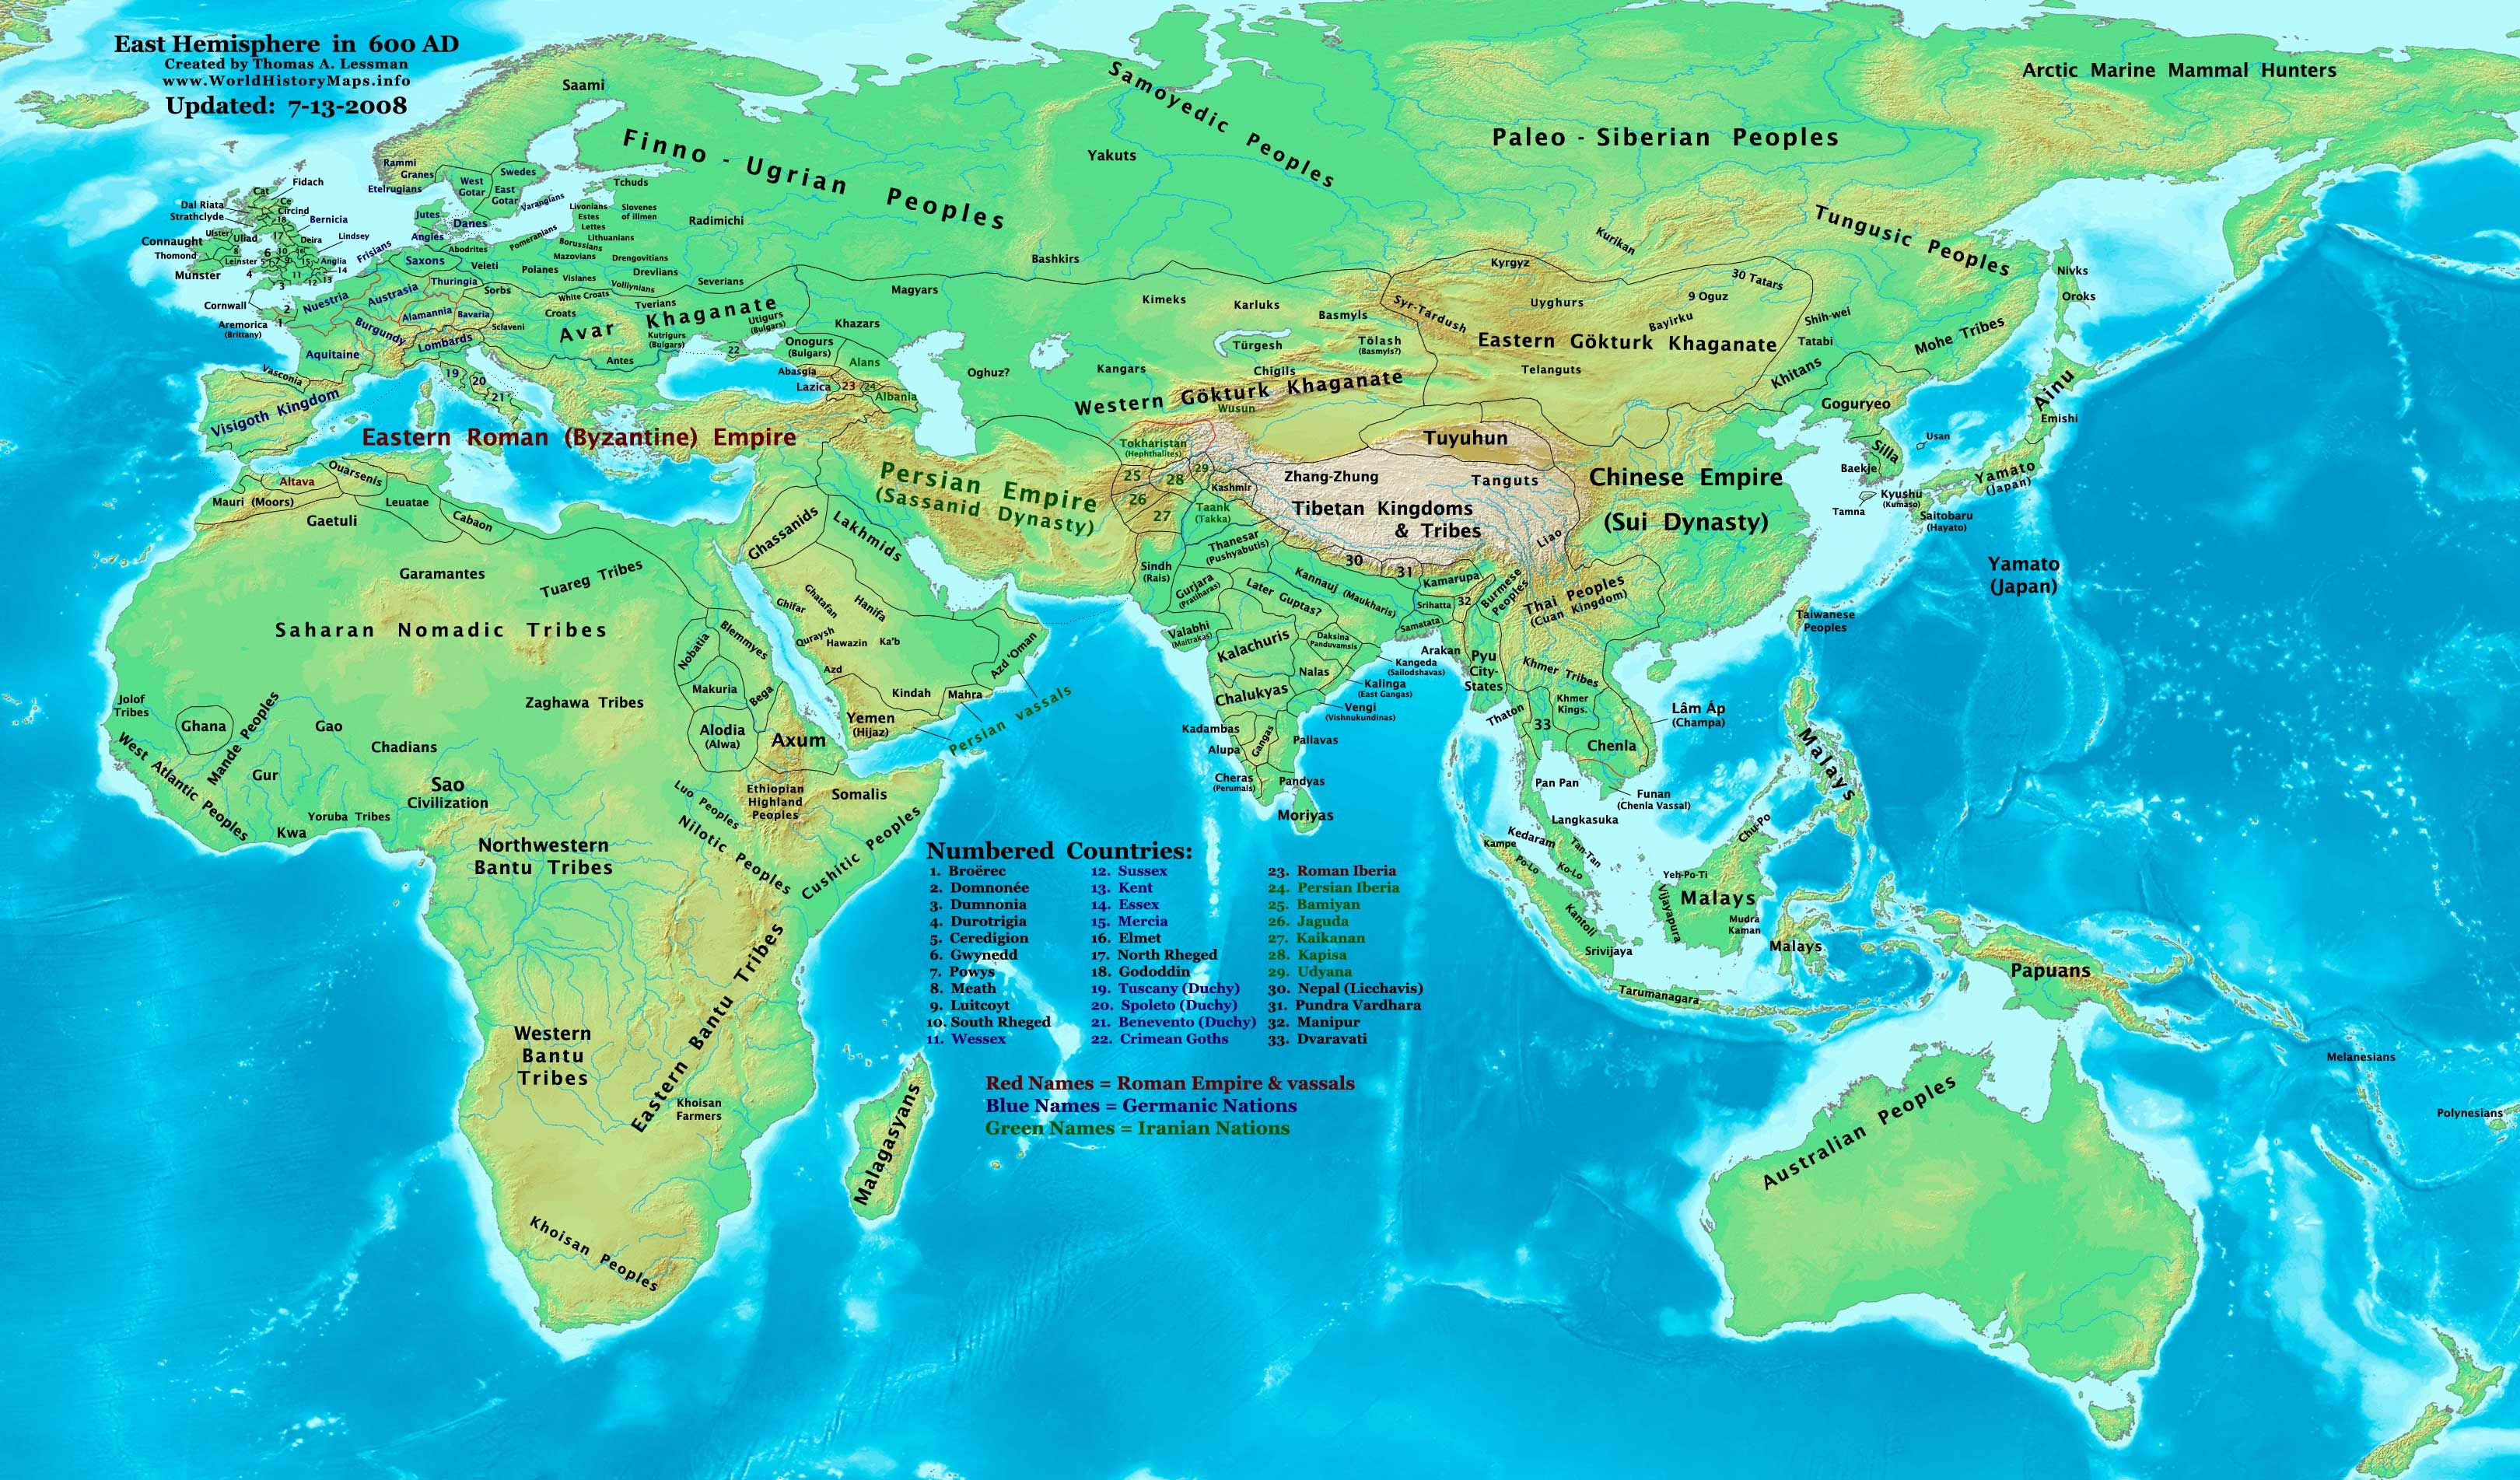 The old world in 600 ad maps pinterest the old world in 600 ad gumiabroncs Choice Image